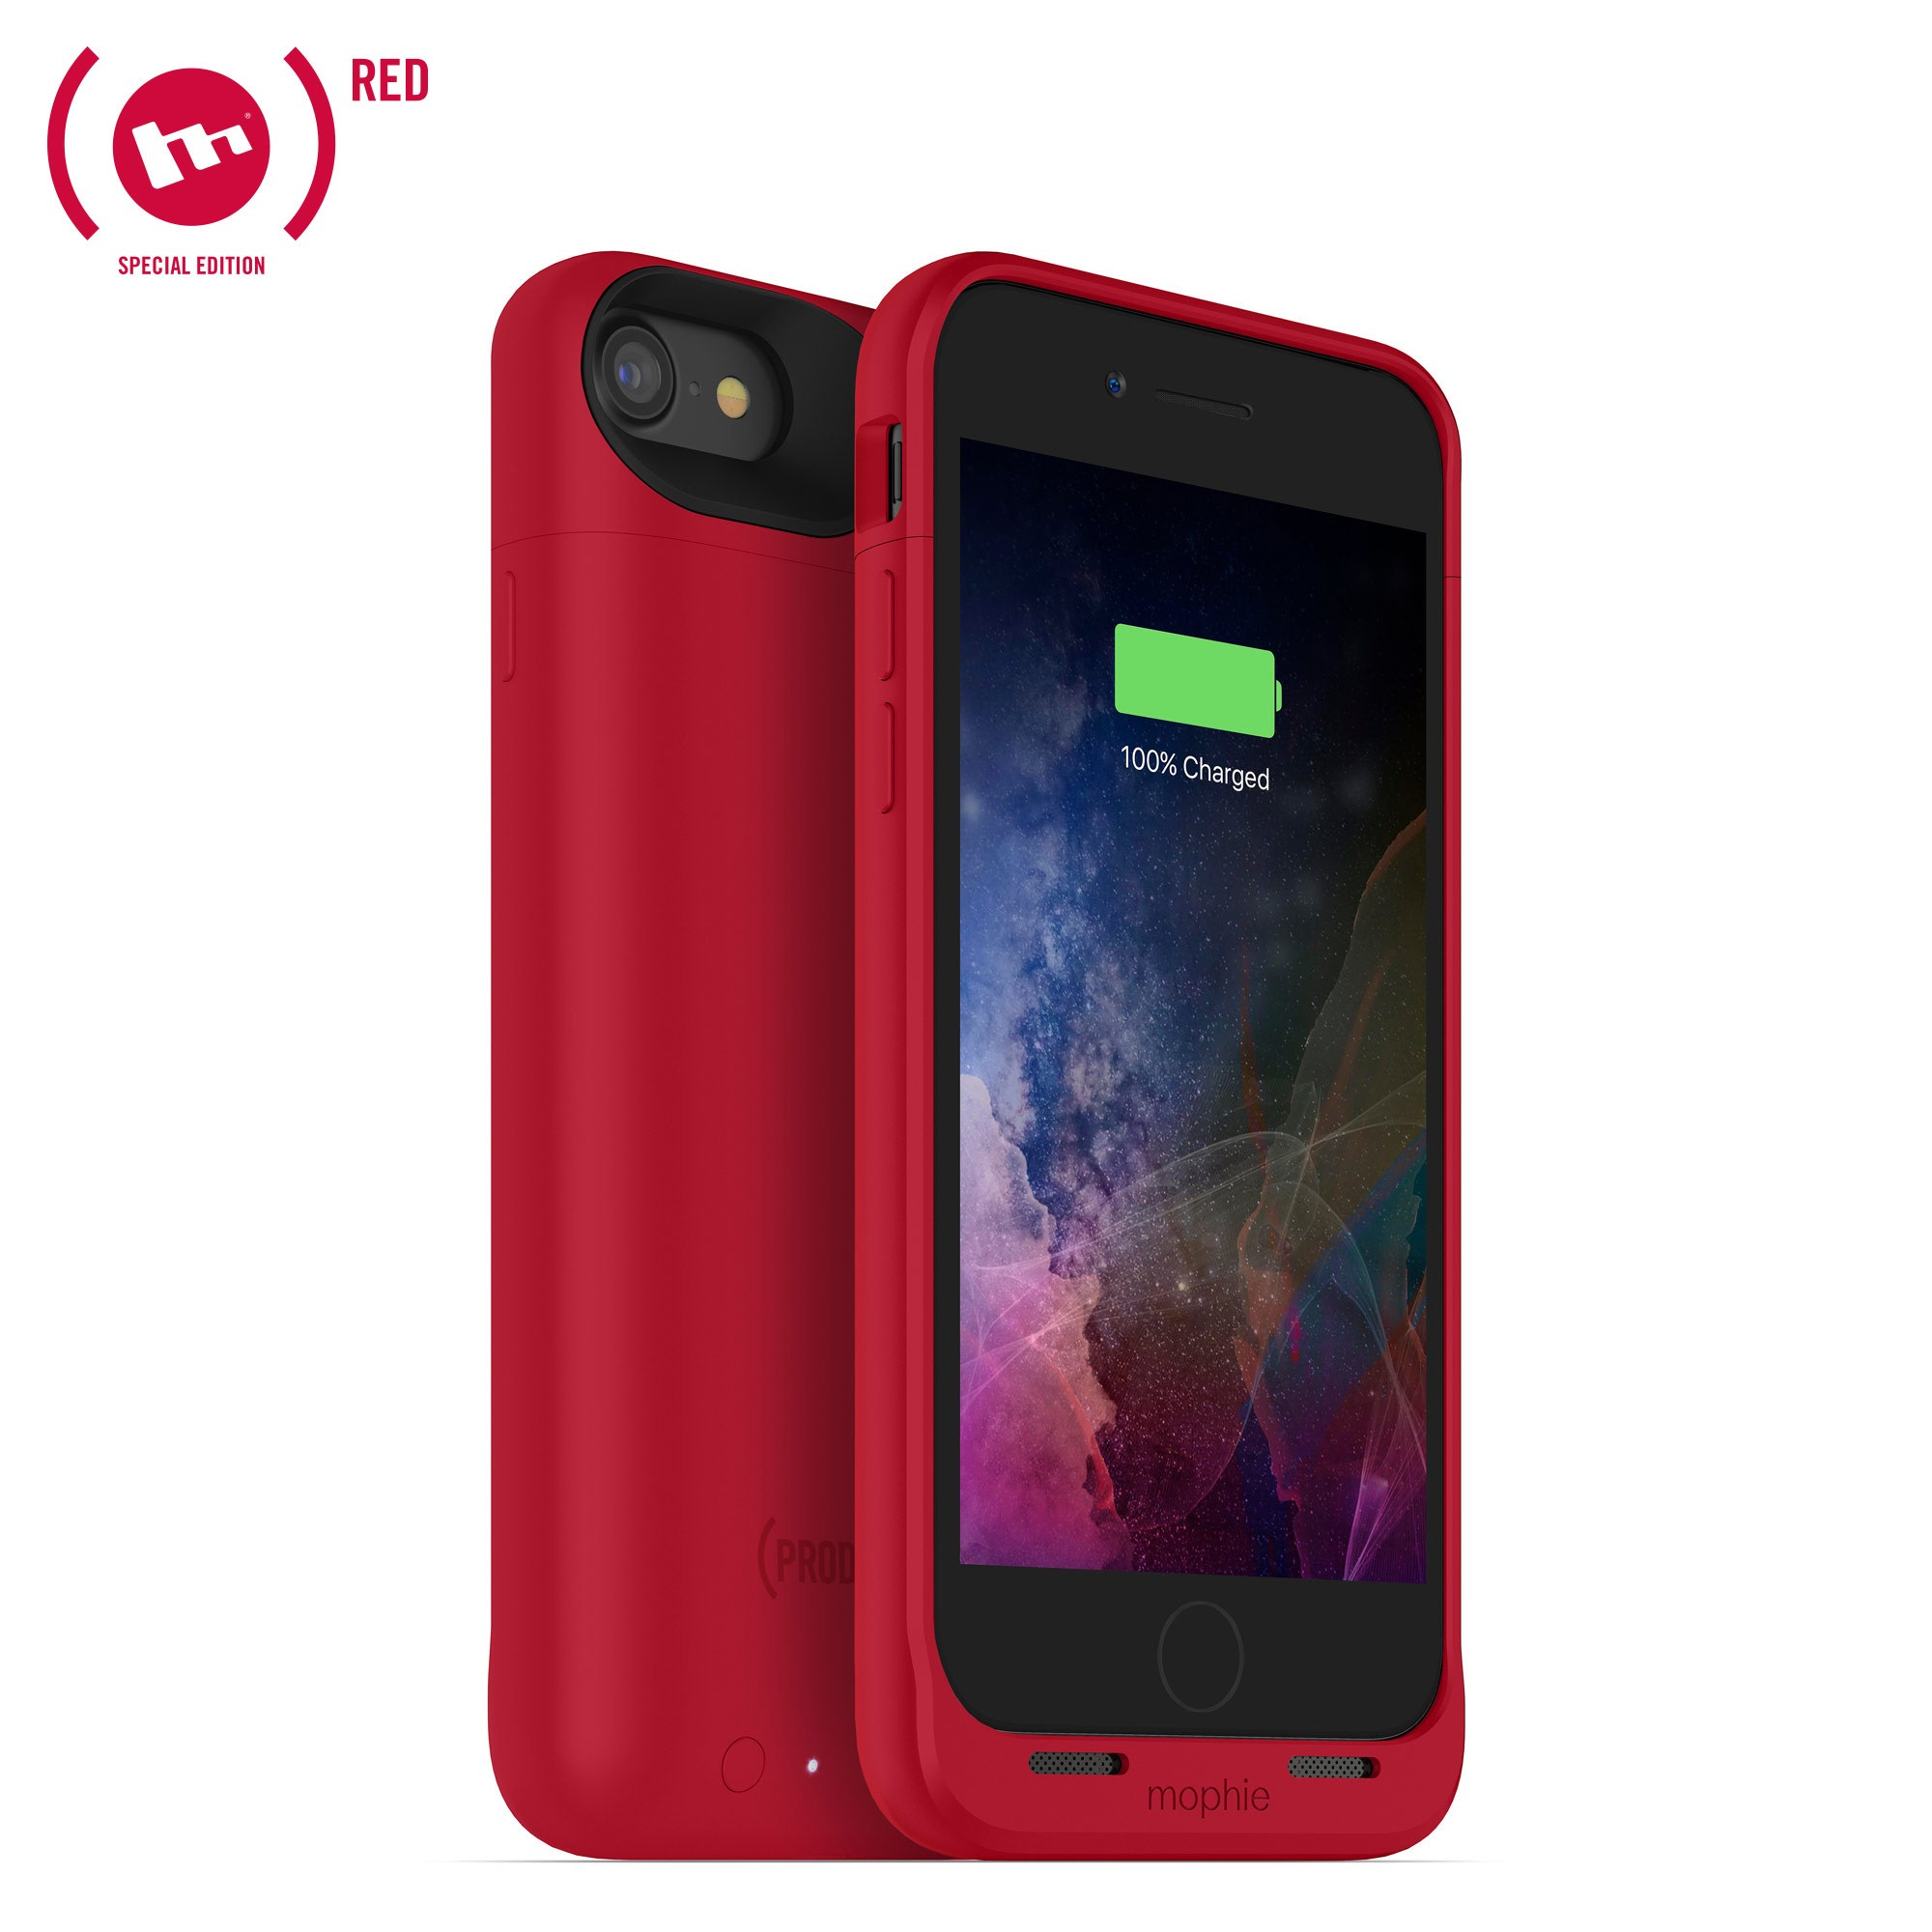 Nabíjecí pouzdro pro Apple iPhone 7 - Mophie, Juice Pack Air 2525mAh Red